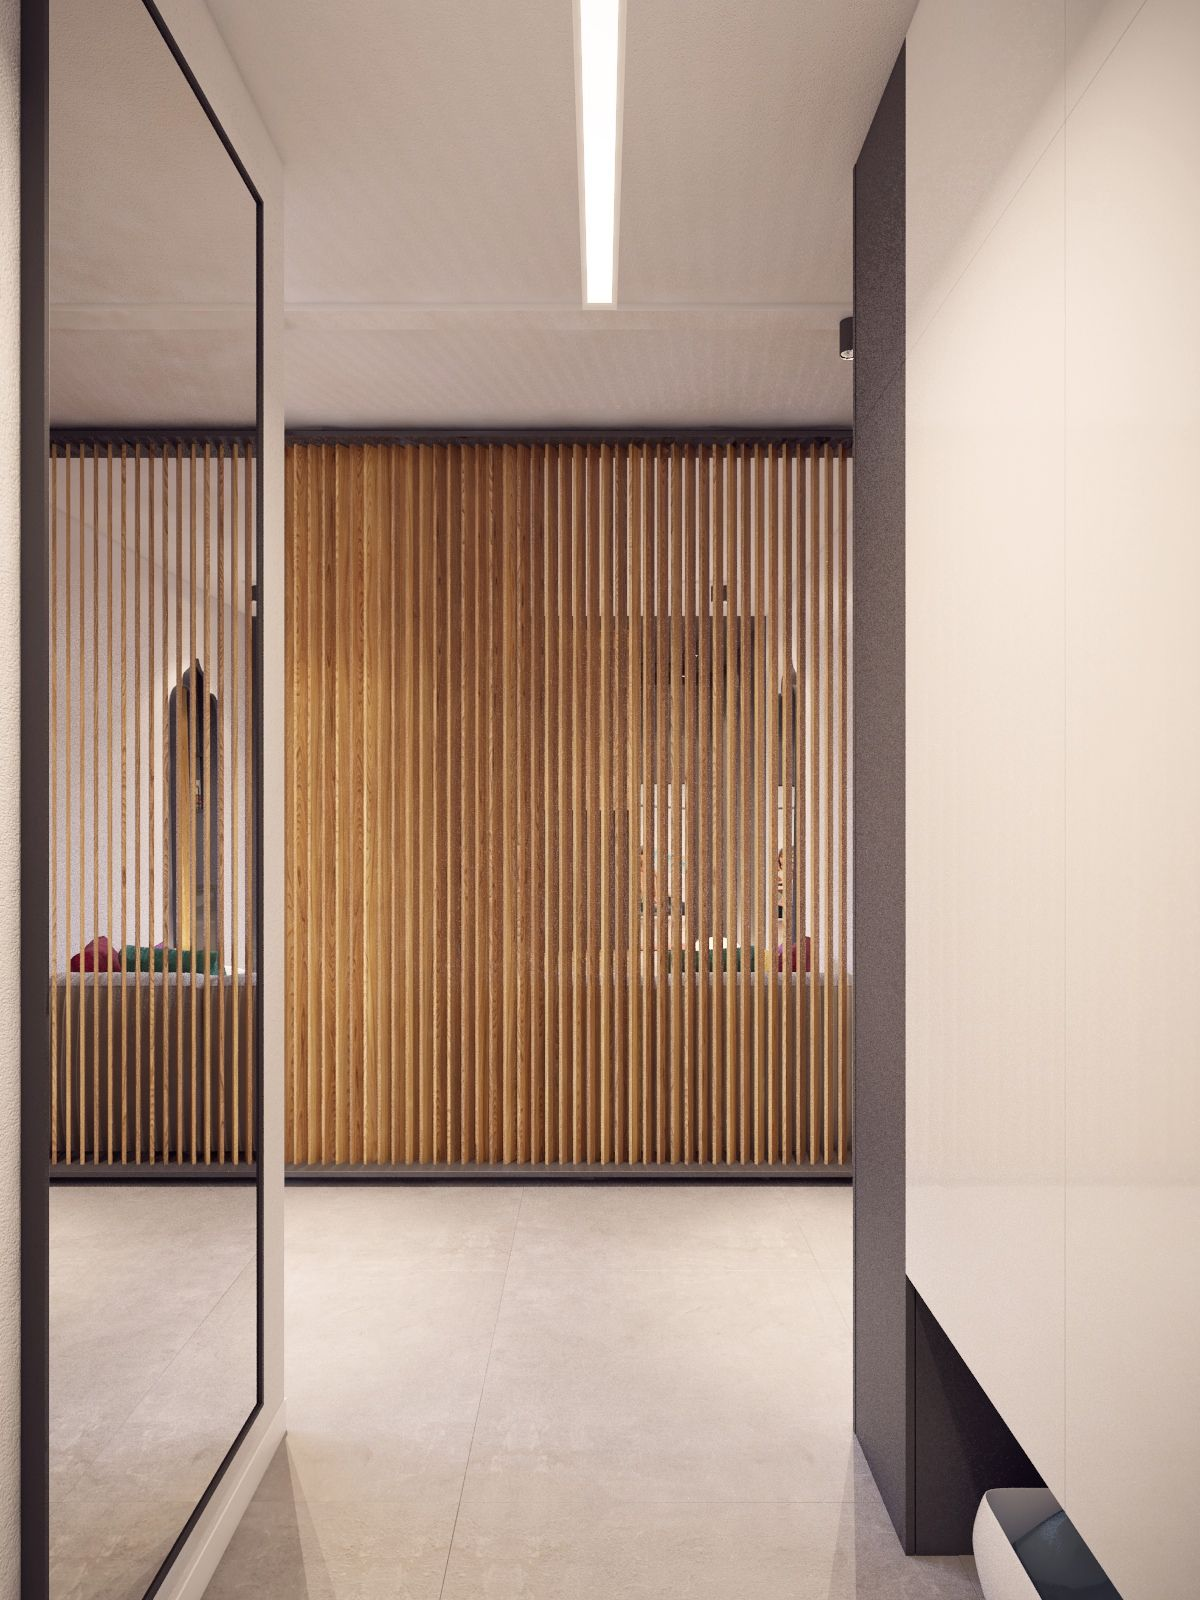 Wood doors modern design apartment interior design ideas ofdesign - A Lively Contemporary Apartment Building Well Decorated And Comfortable Modern Apartment Design Corridor Marble Floor White Wall Mirror Wooden Wall Panel